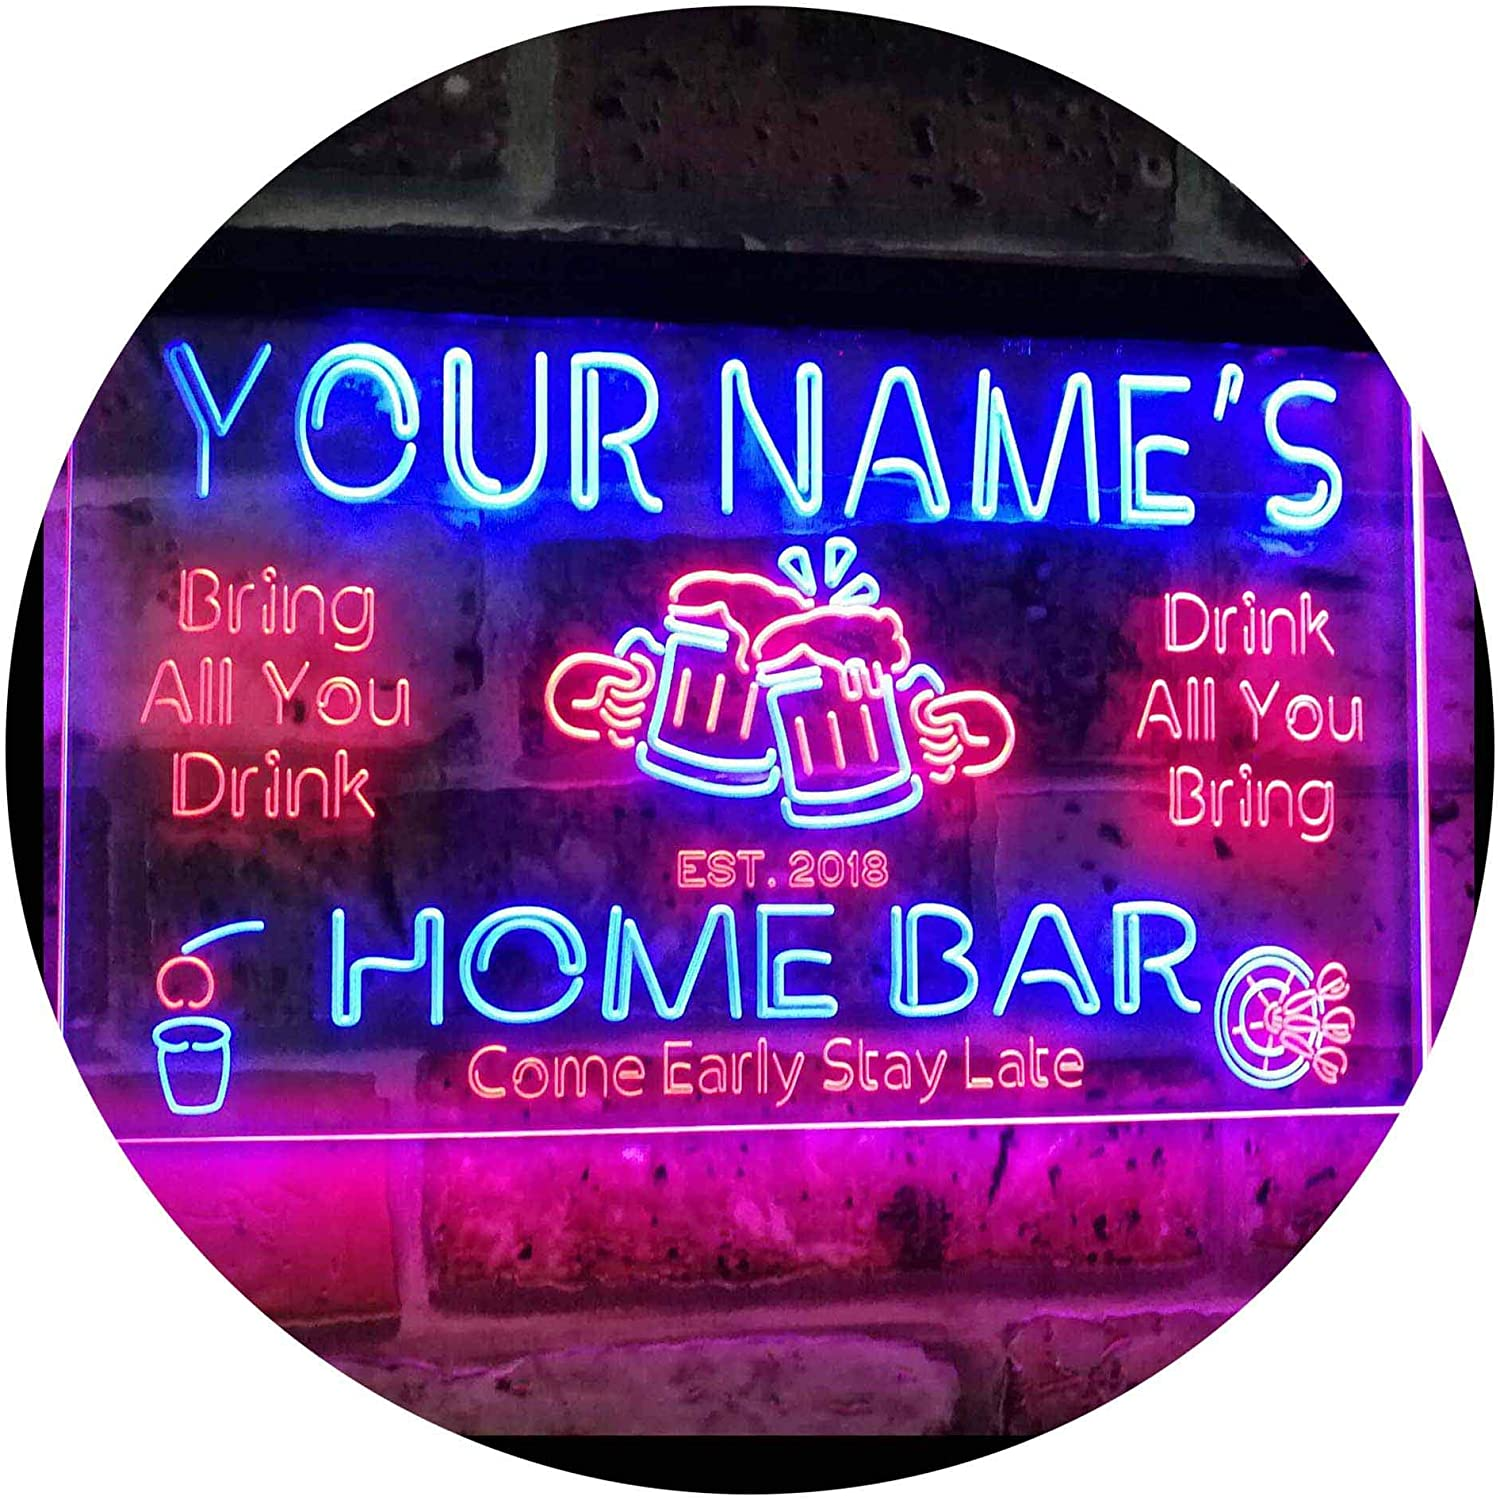 Home Bar Beer Family Name LED Neon Light Sign hang sign home decor crafts